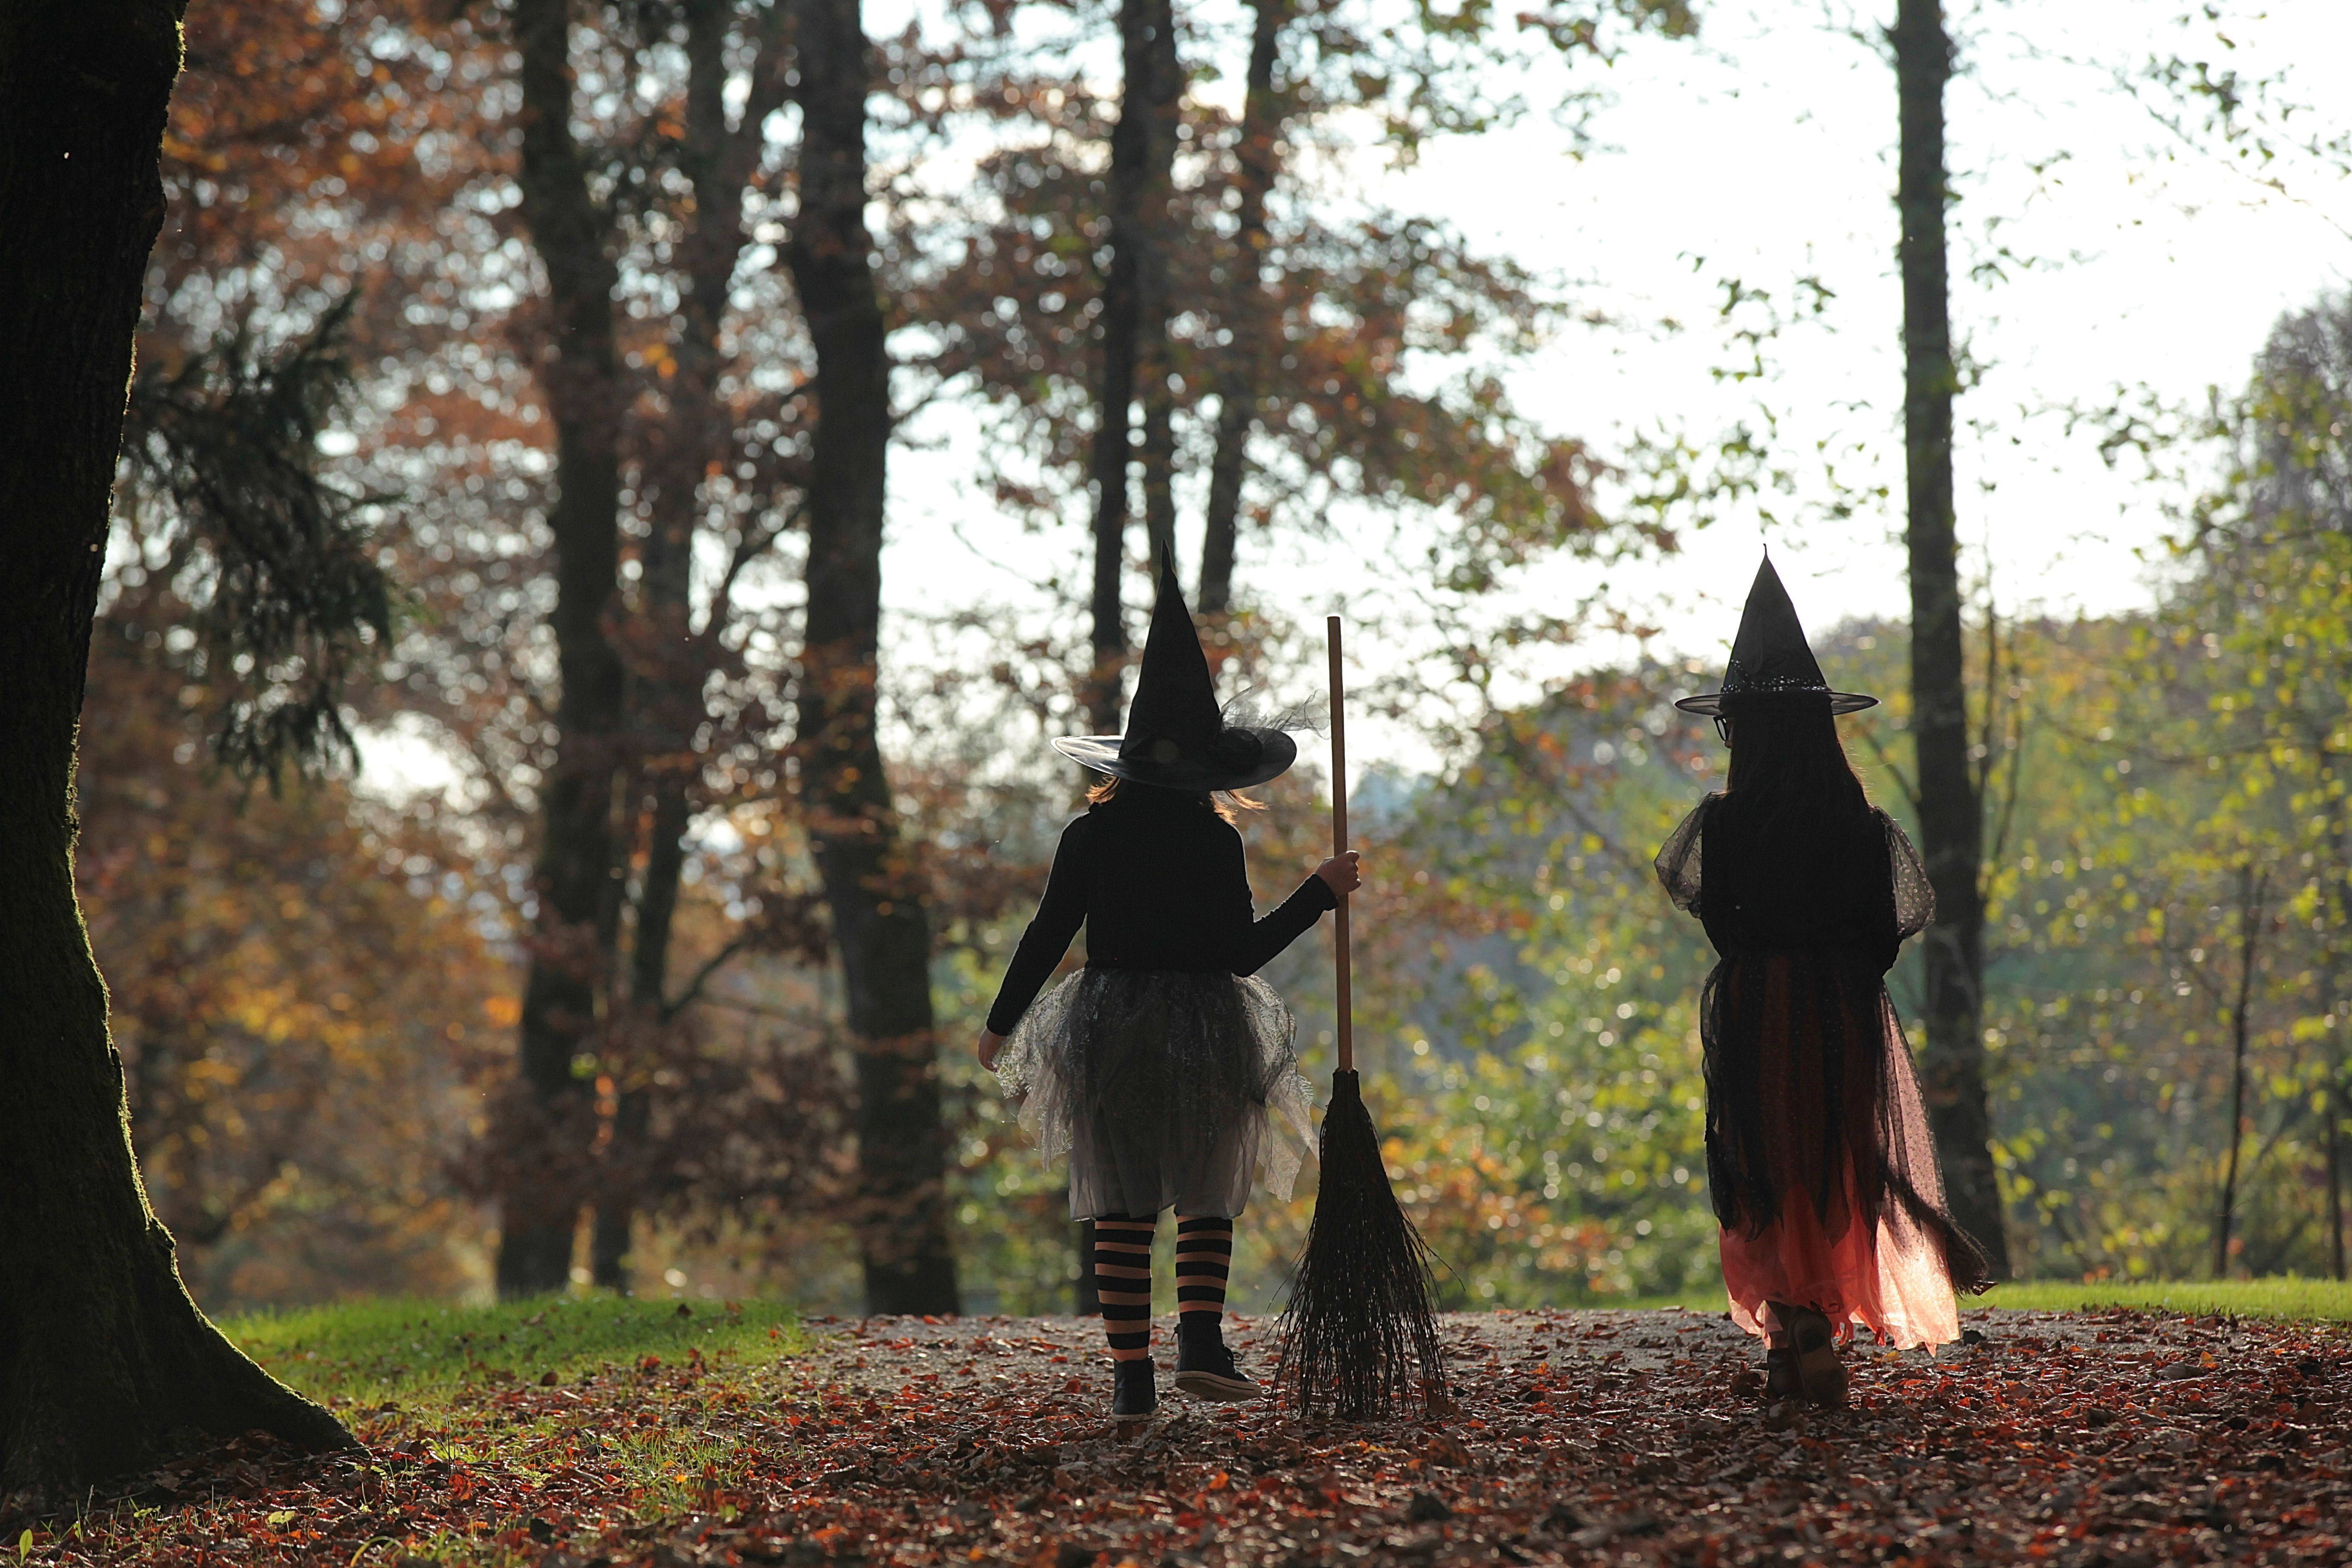 Samhain Folklore - Halloween Superstitions and Legends